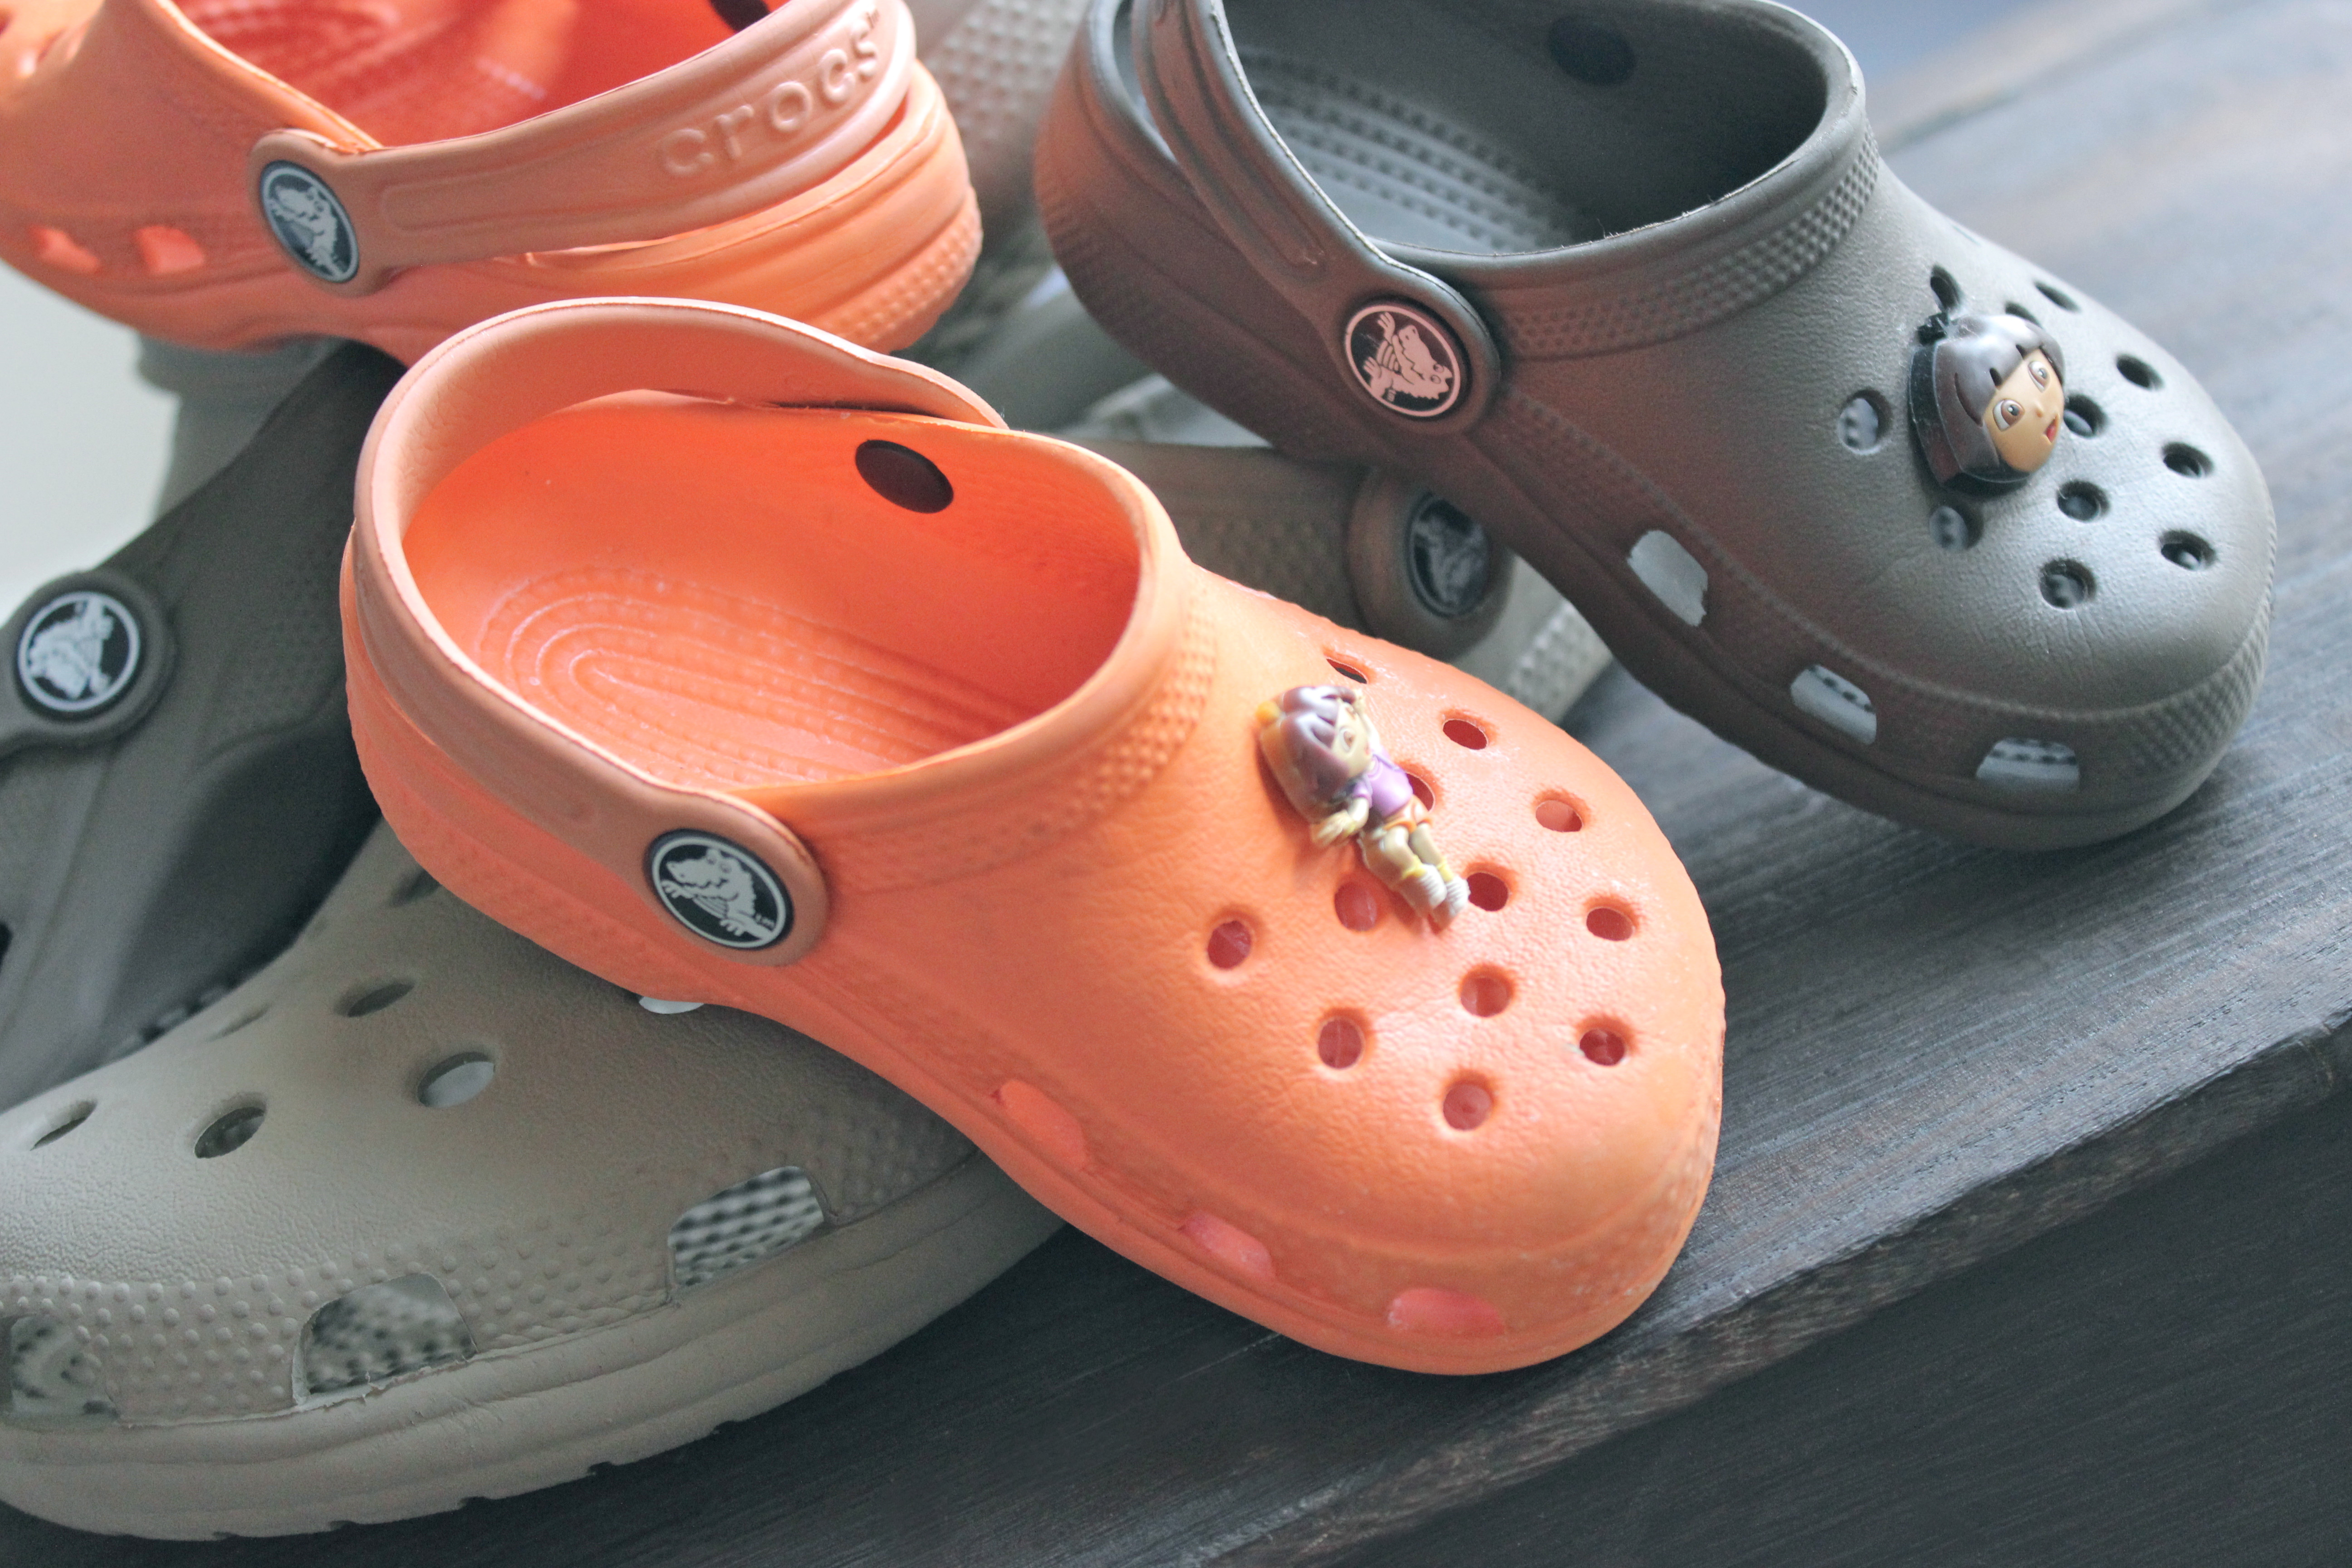 fa072944407 How to Put on Croc Charms